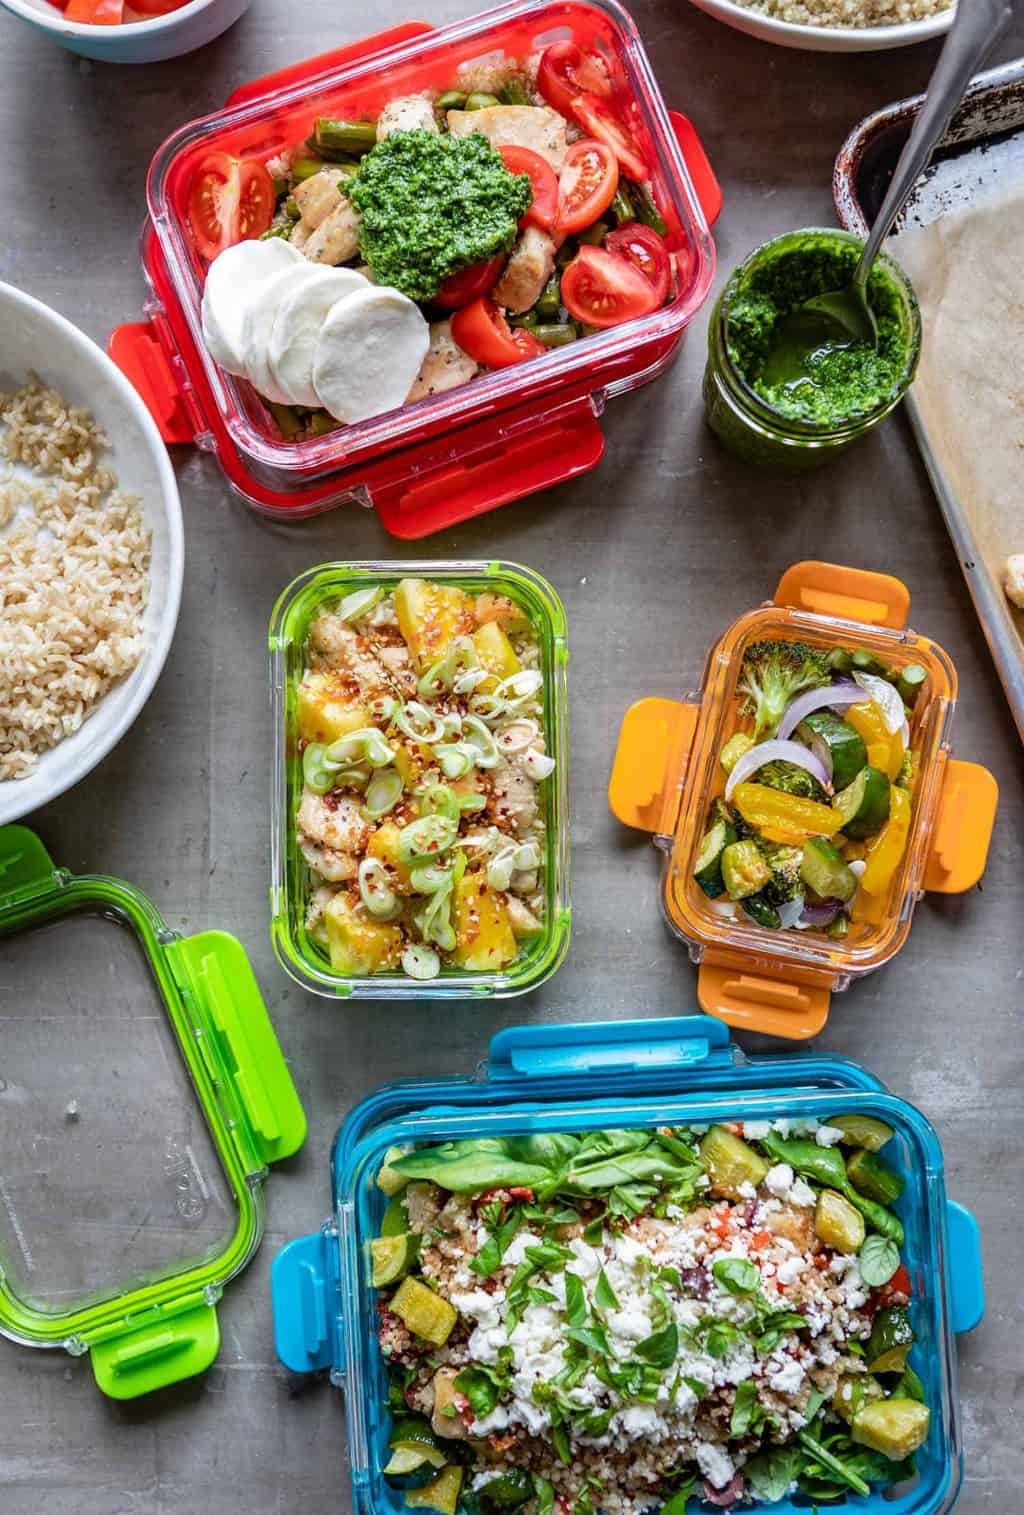 These Marinated Chicken Meal Prep Bowls Are a Weekday Lunch Win